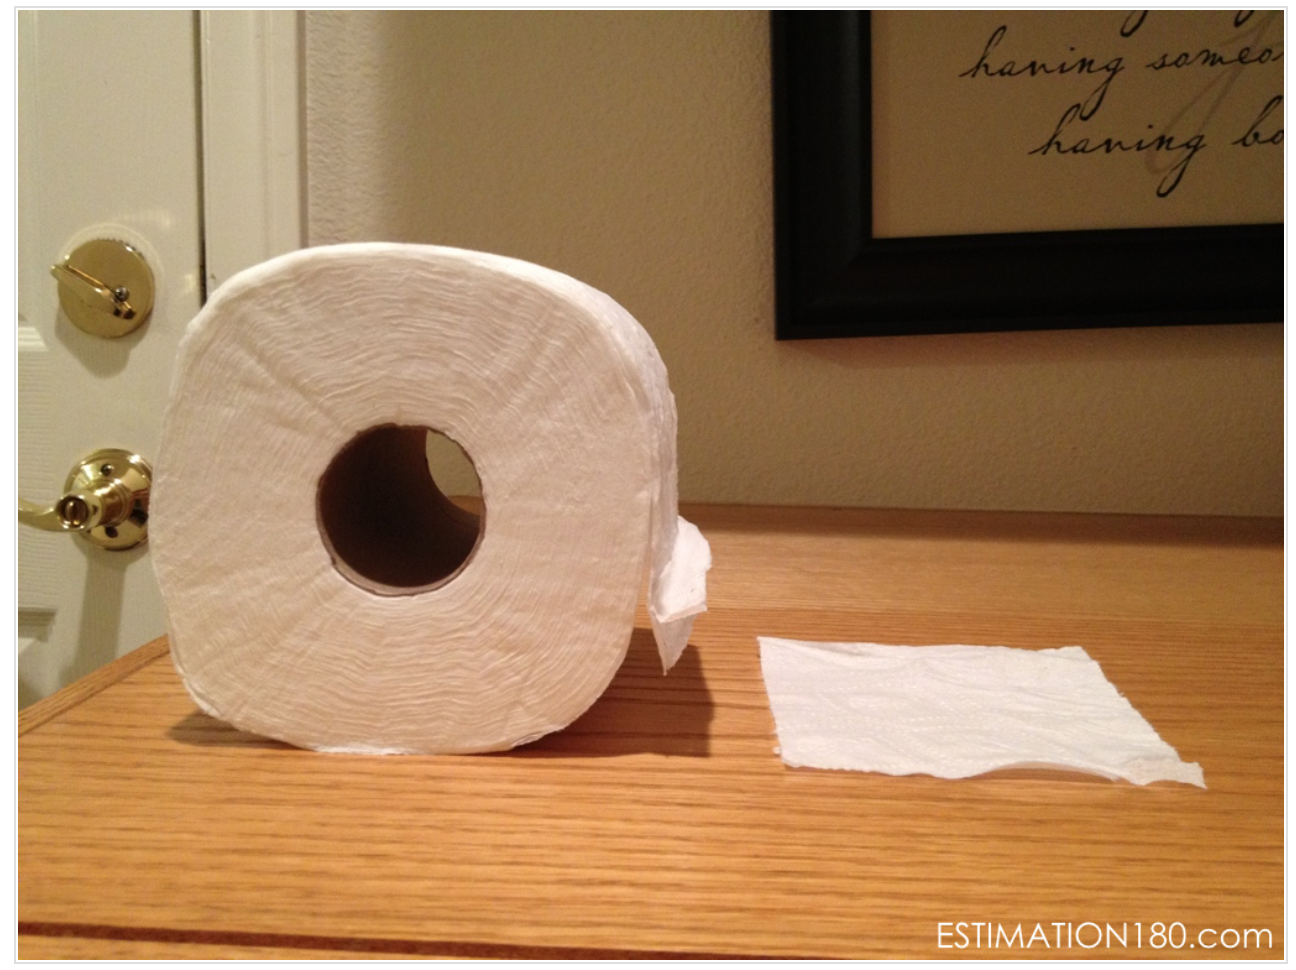 Image of single sheet of toilet paper next to a full roll of toilet paper